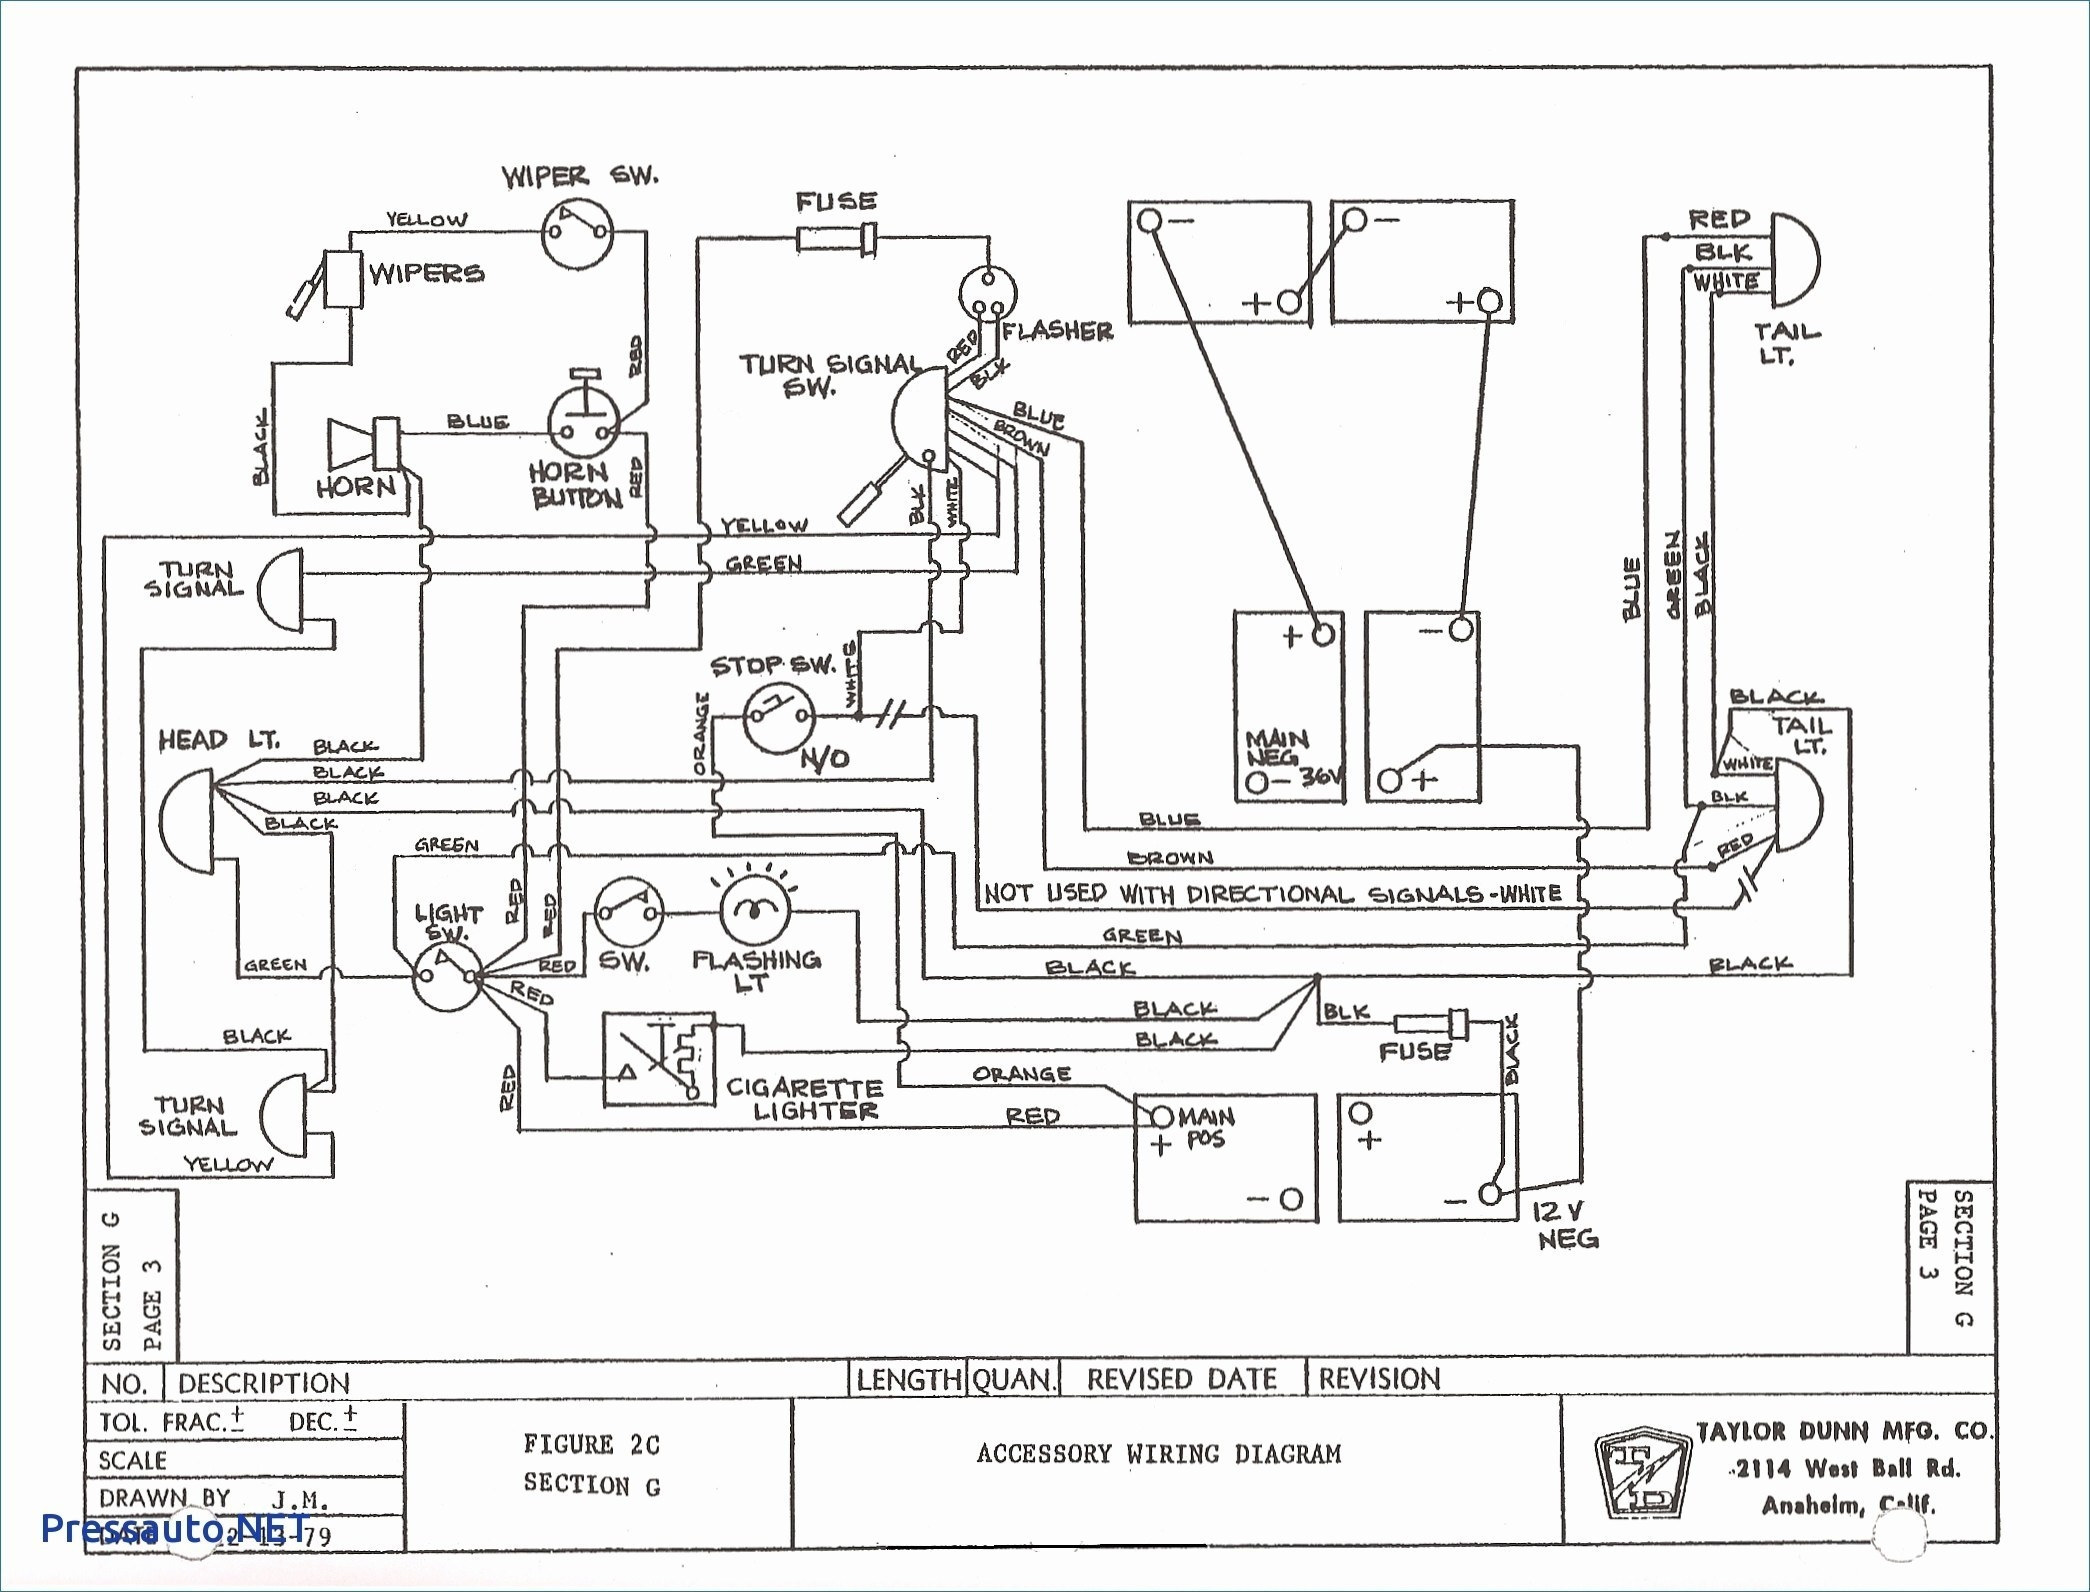 Yamaha G Electric Wiring Diagram on big bear 400, big bear 350, g1e,